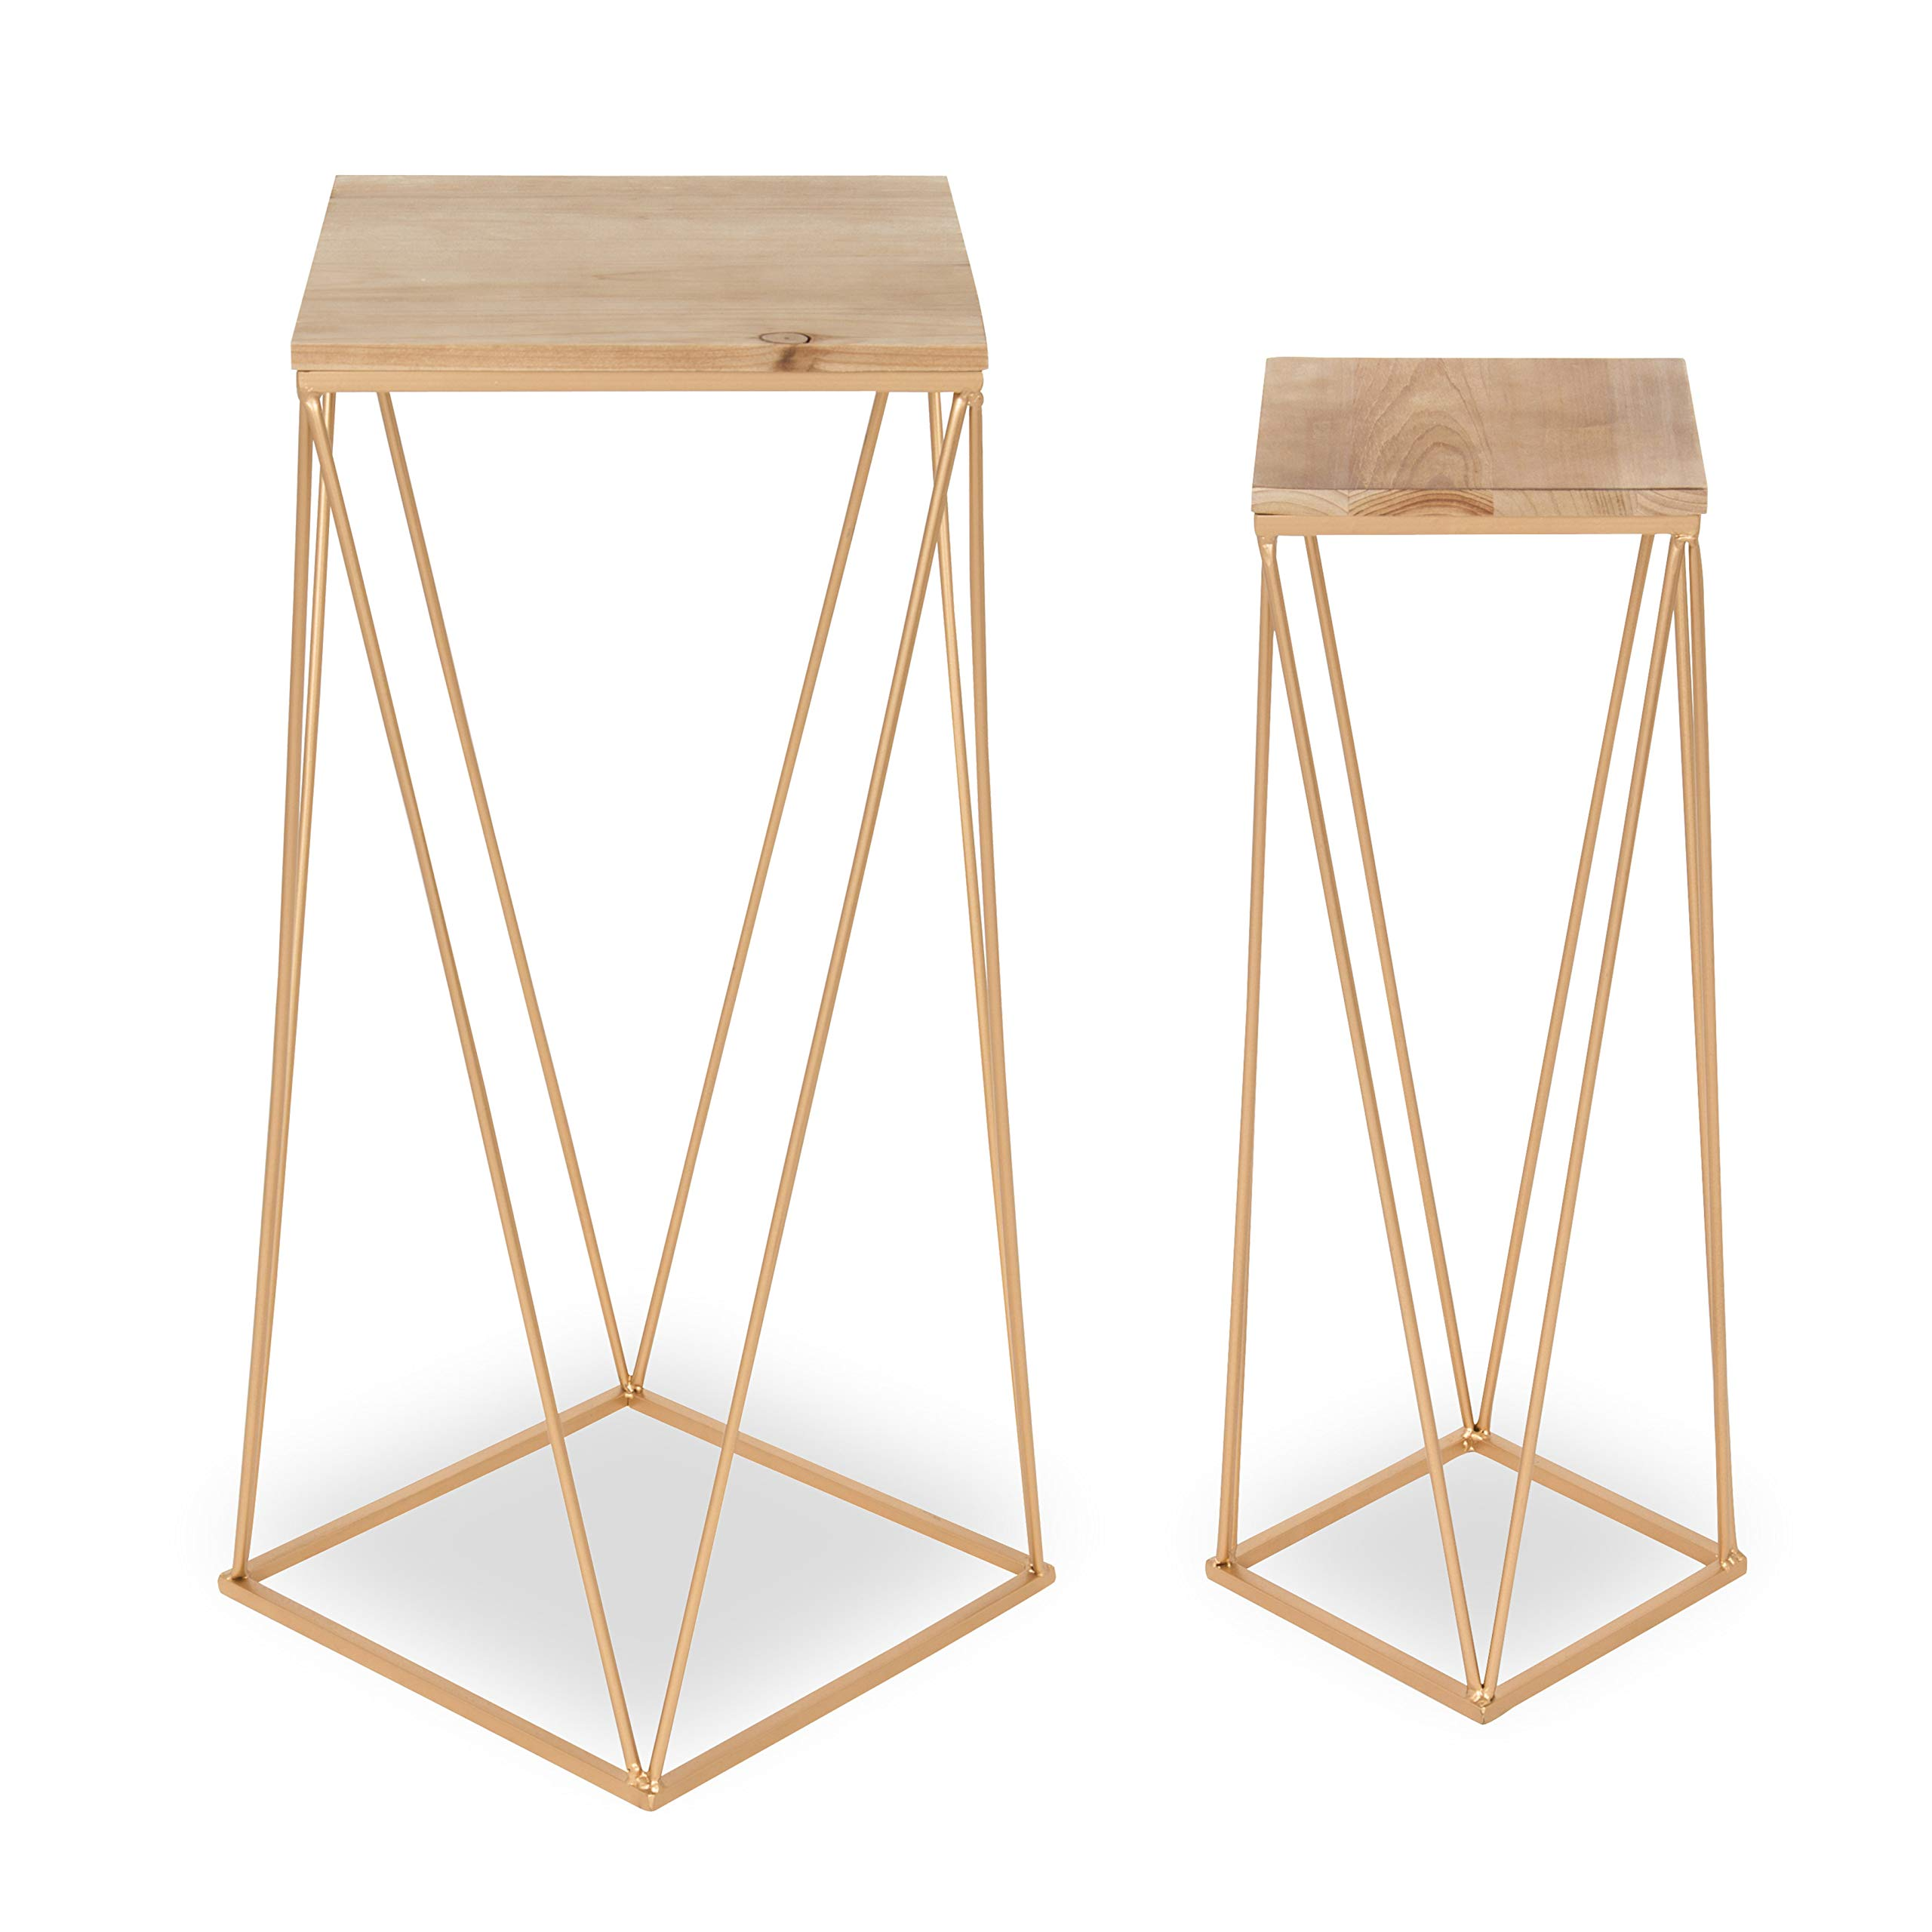 Kate and Laurel Gabriele Metal Accent Nesting Tables with Natural Wood Top and Gold Base, Set of 2